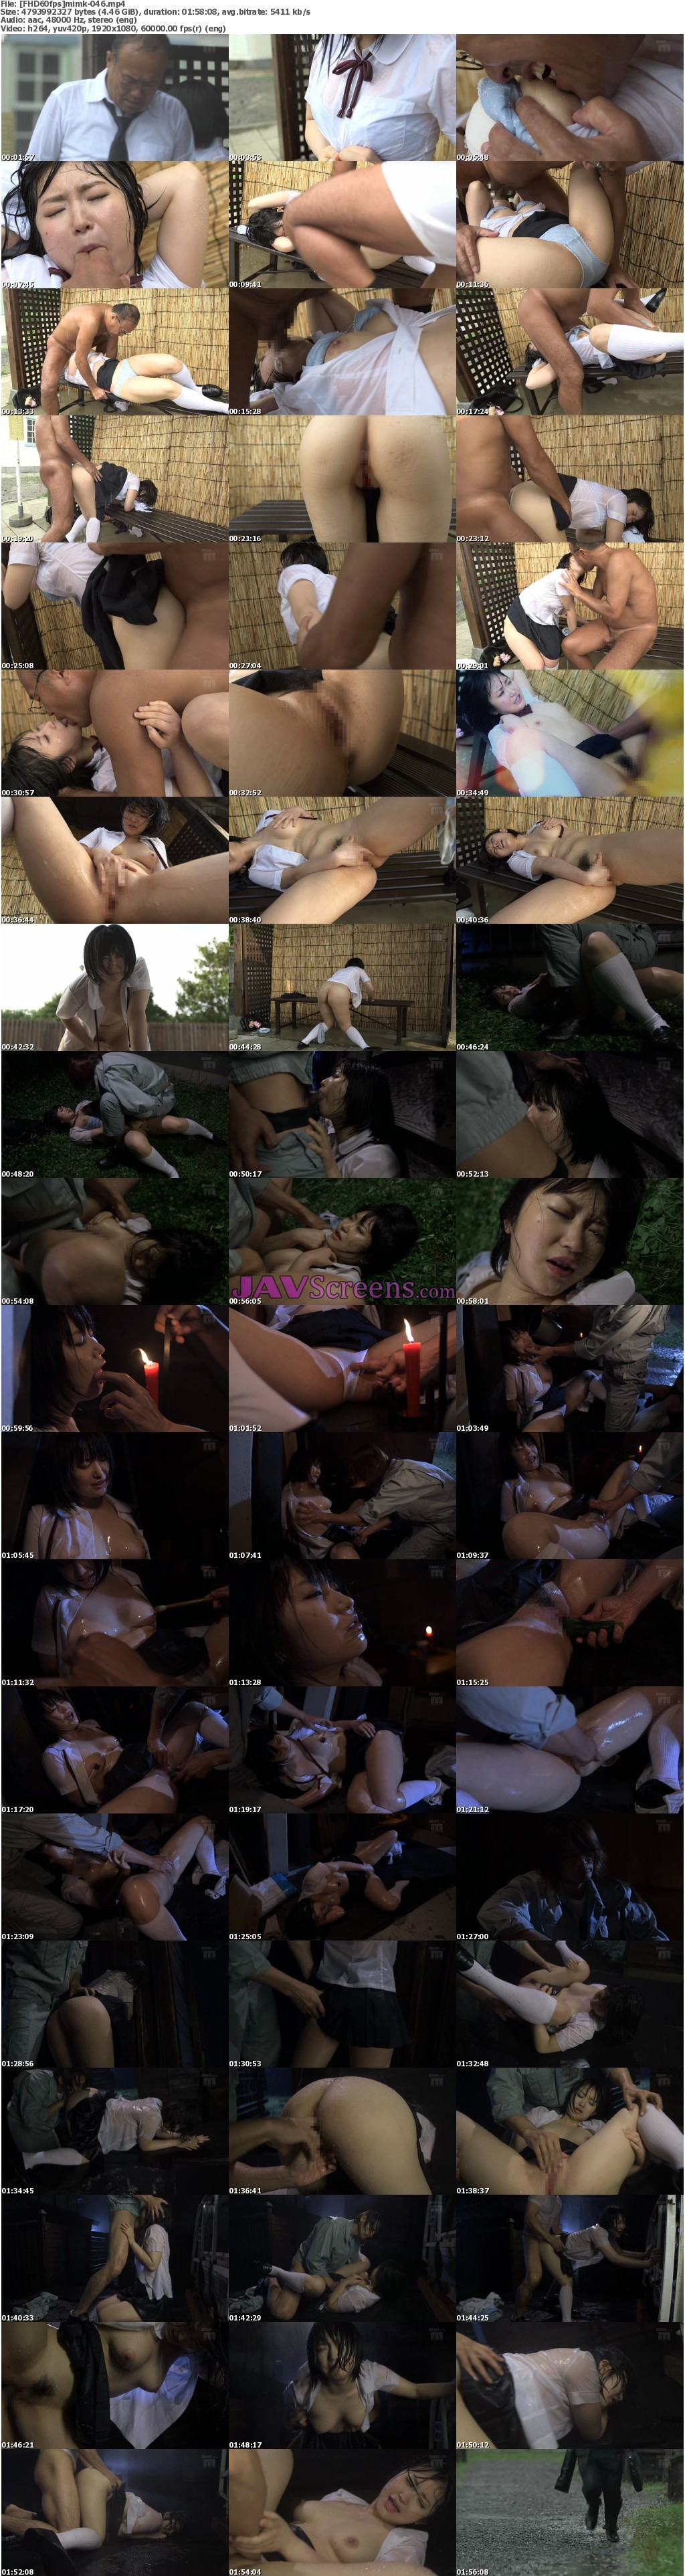 MIMK-046.jpg - JAV Screenshot